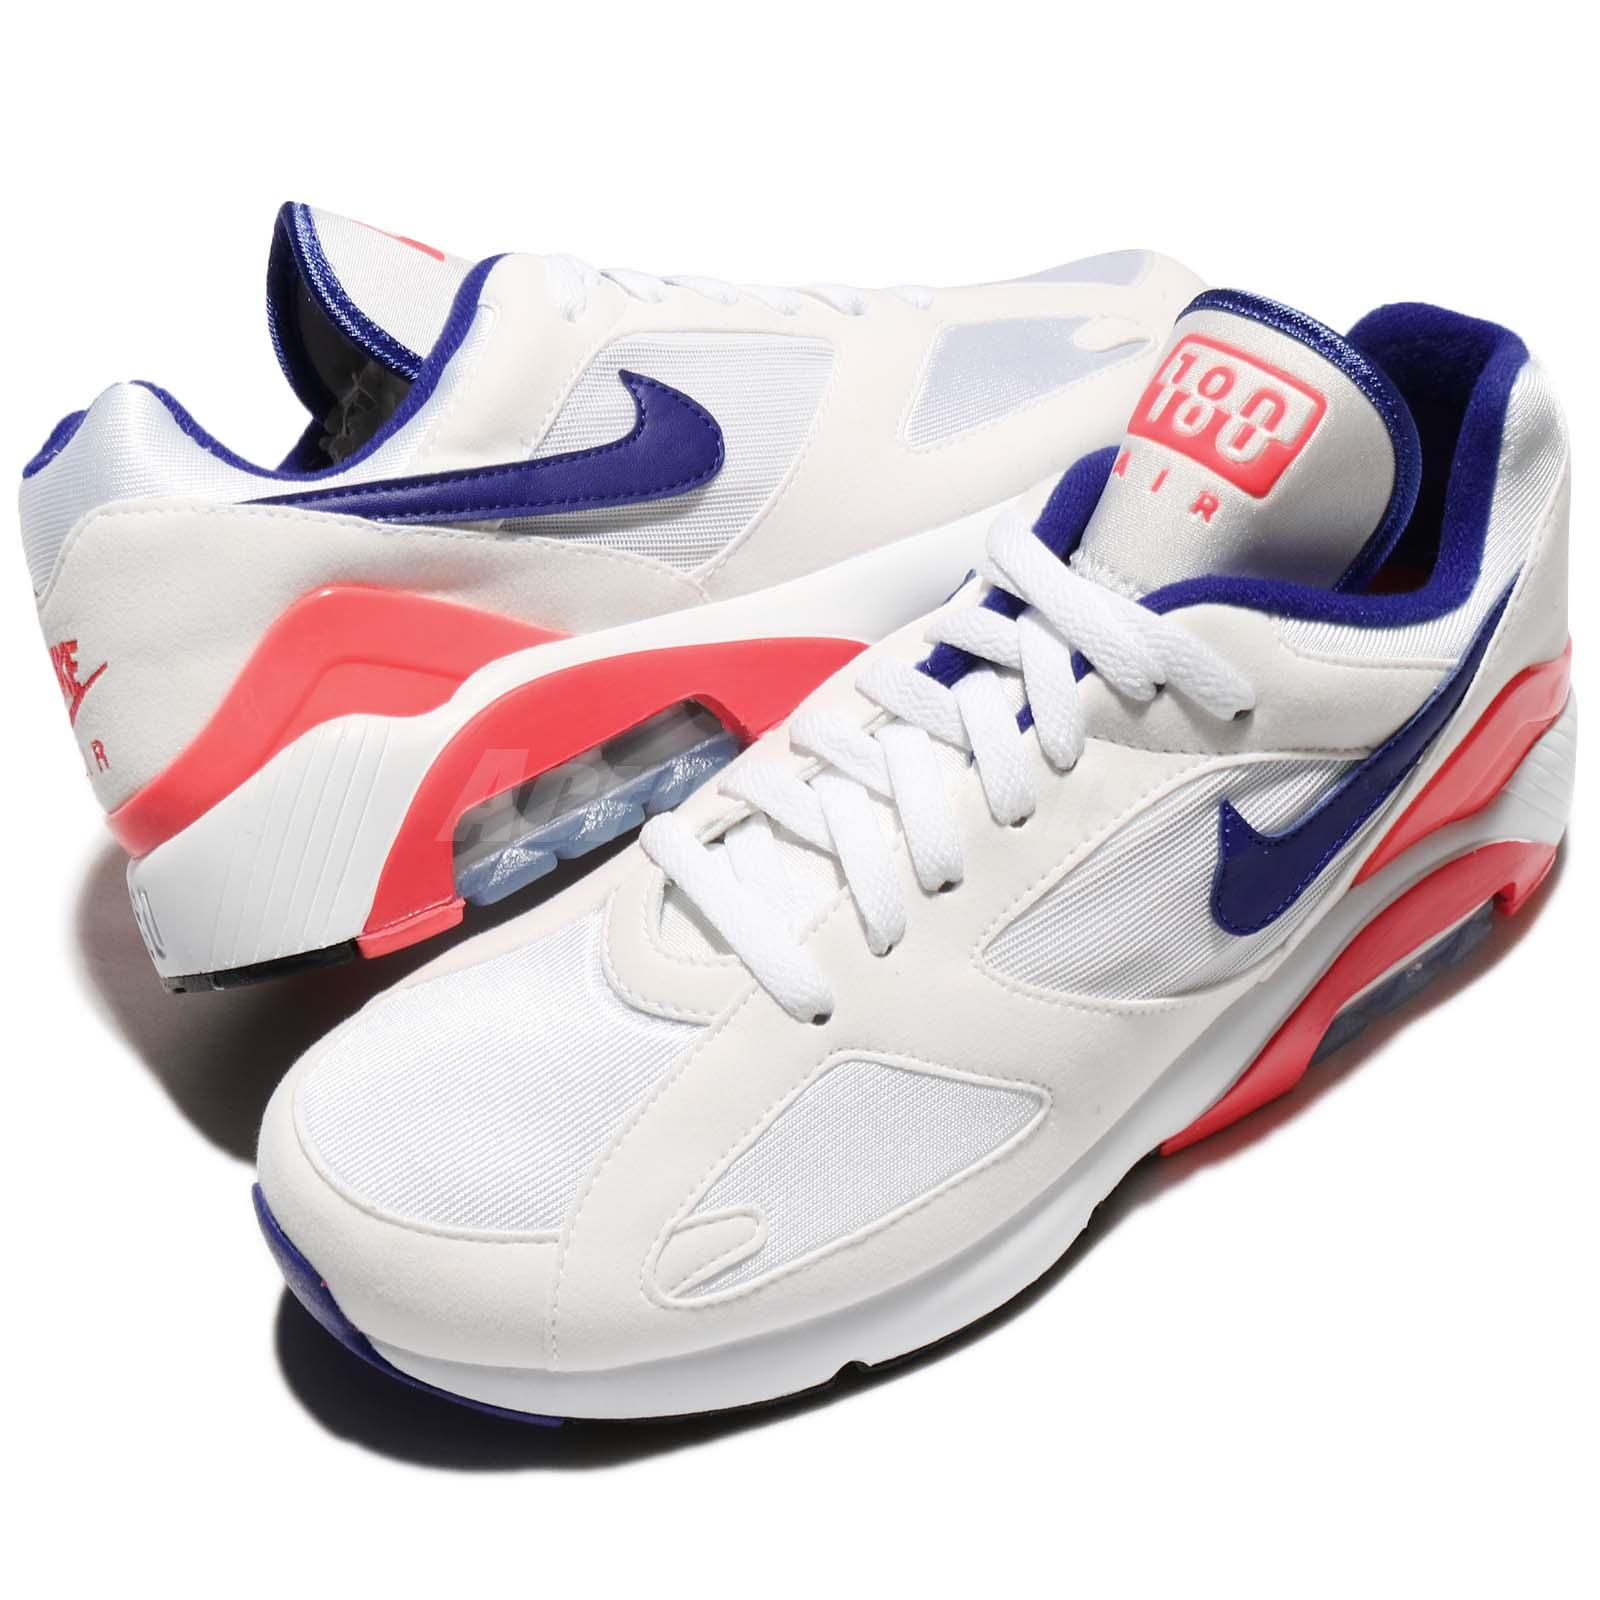 on sale a7aaf 19fa3 Details about Nike Air Max 180 OG Ultramarine Pack White Solar Red Men  Running Shoe 615287-100